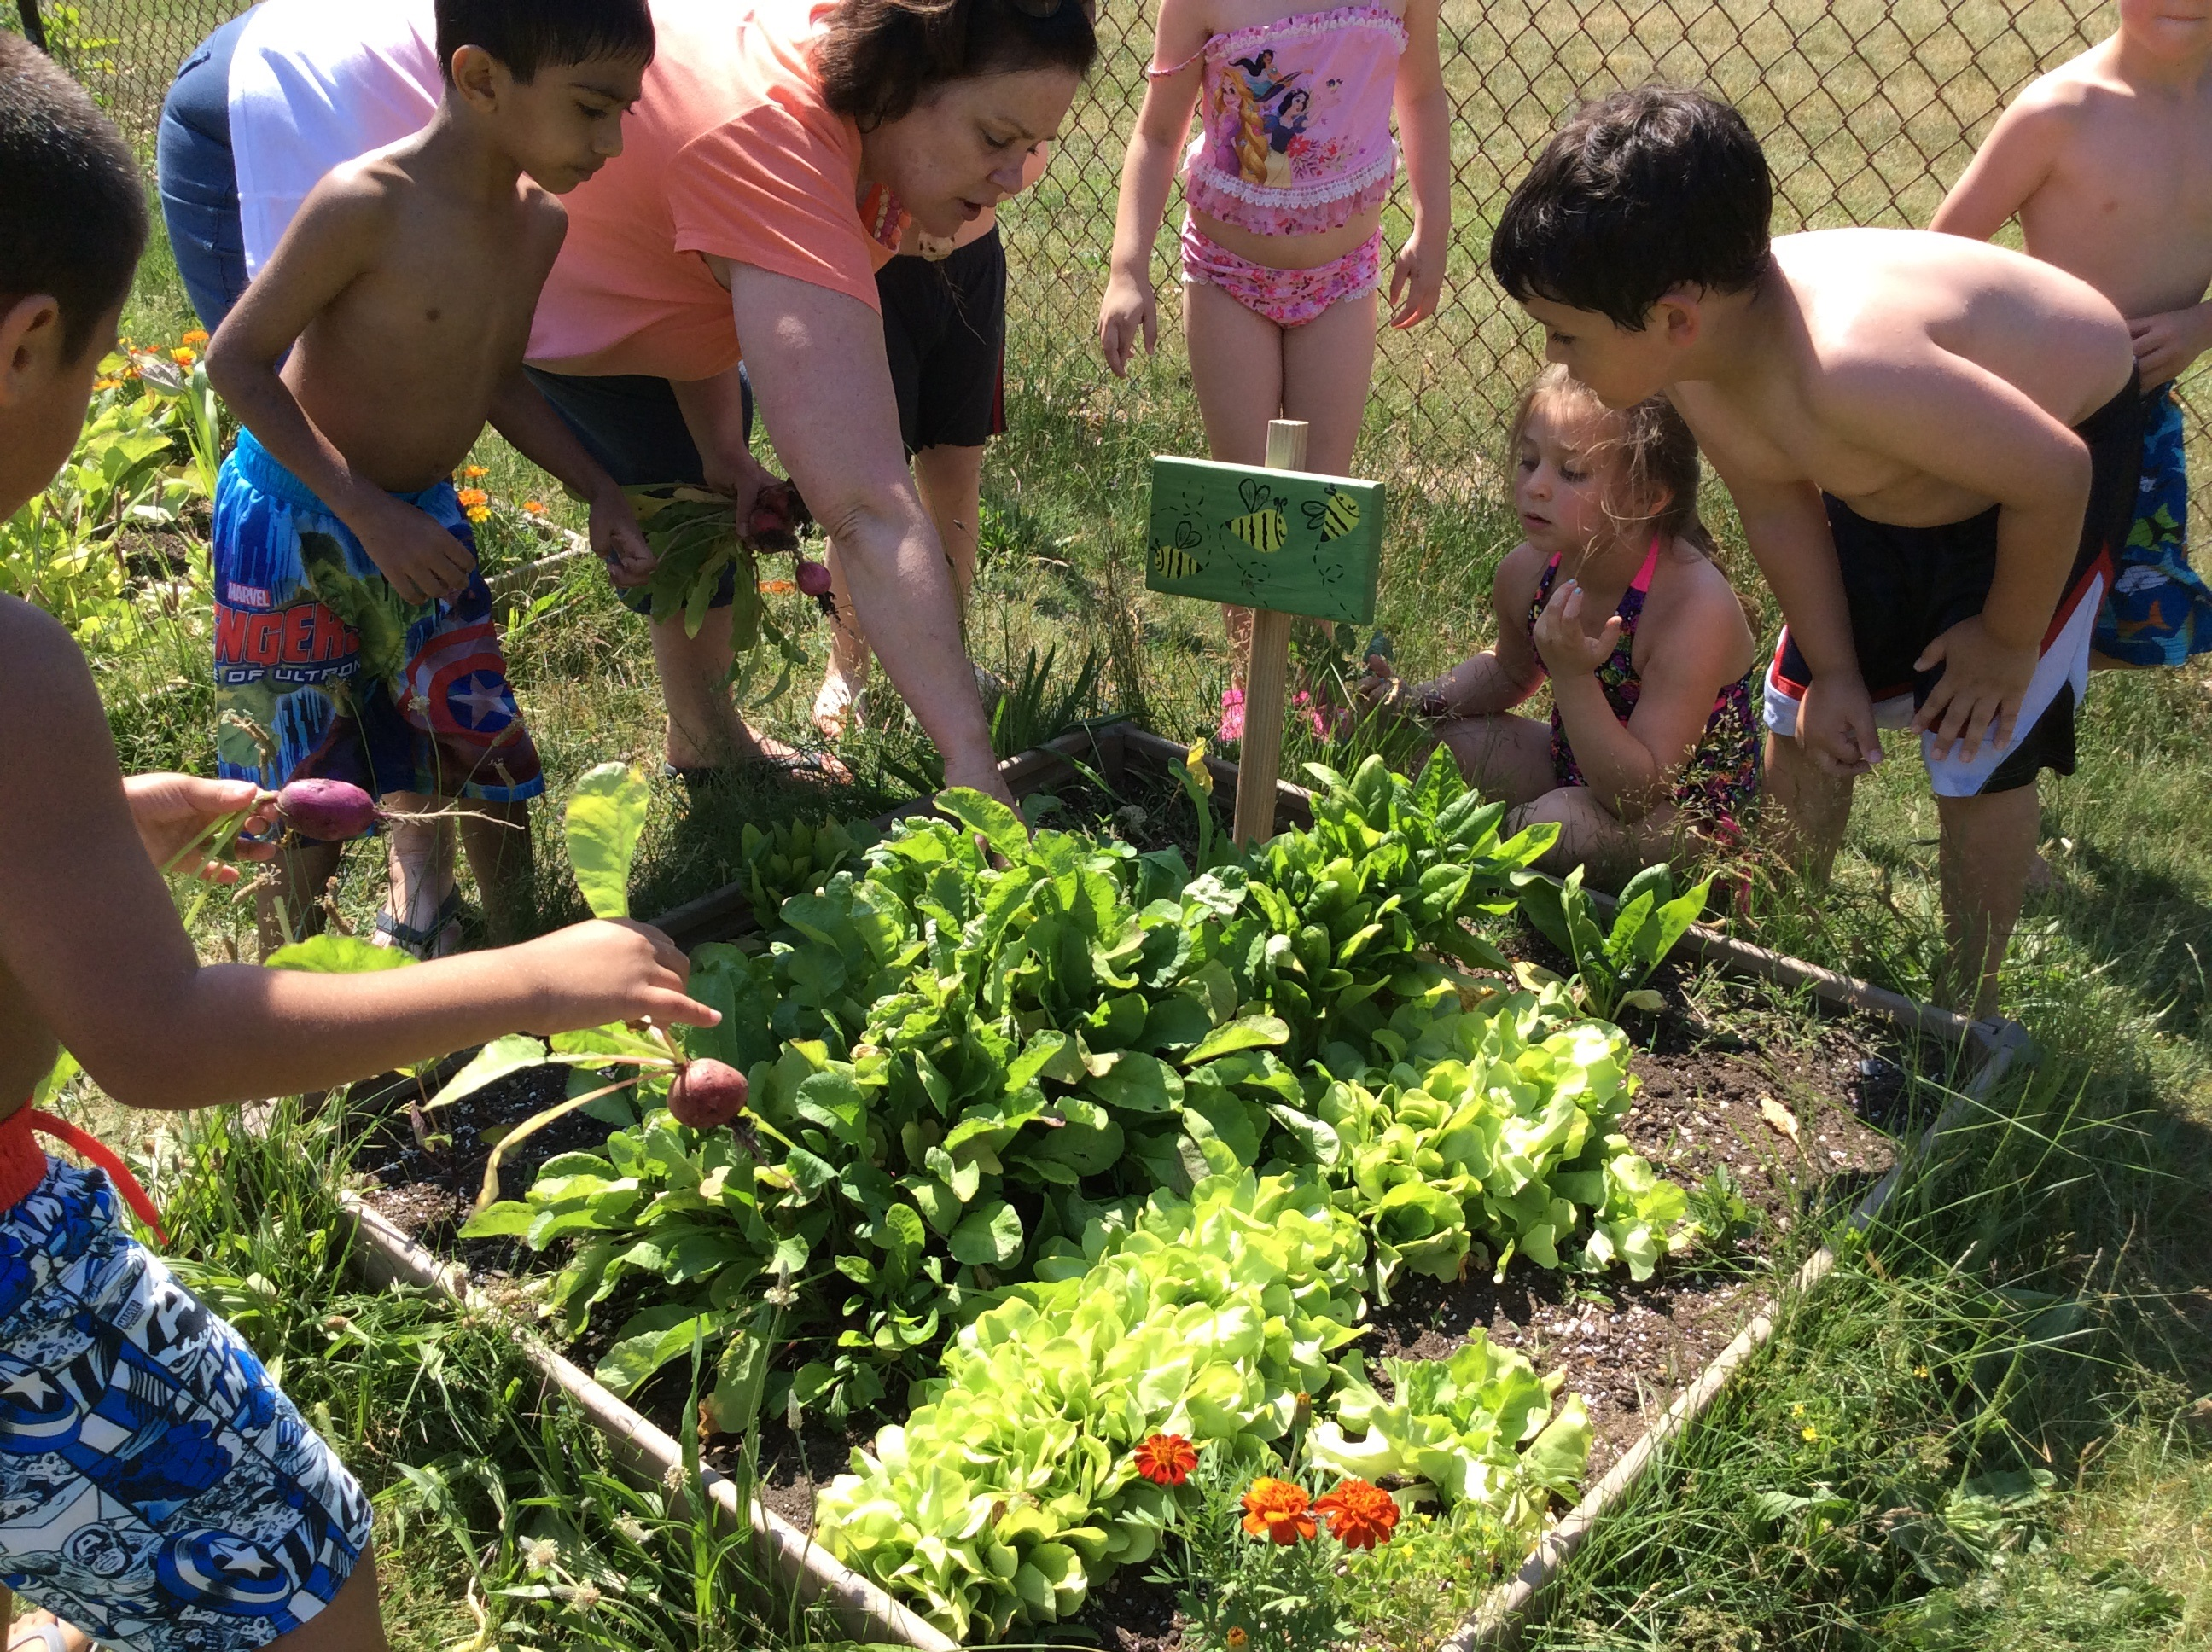 Pre K Kindergarten Center Help Harvest Vegetables They Planted In Box Gardens To Research The Question Can We As A Cl Cultivate Garden And Grow